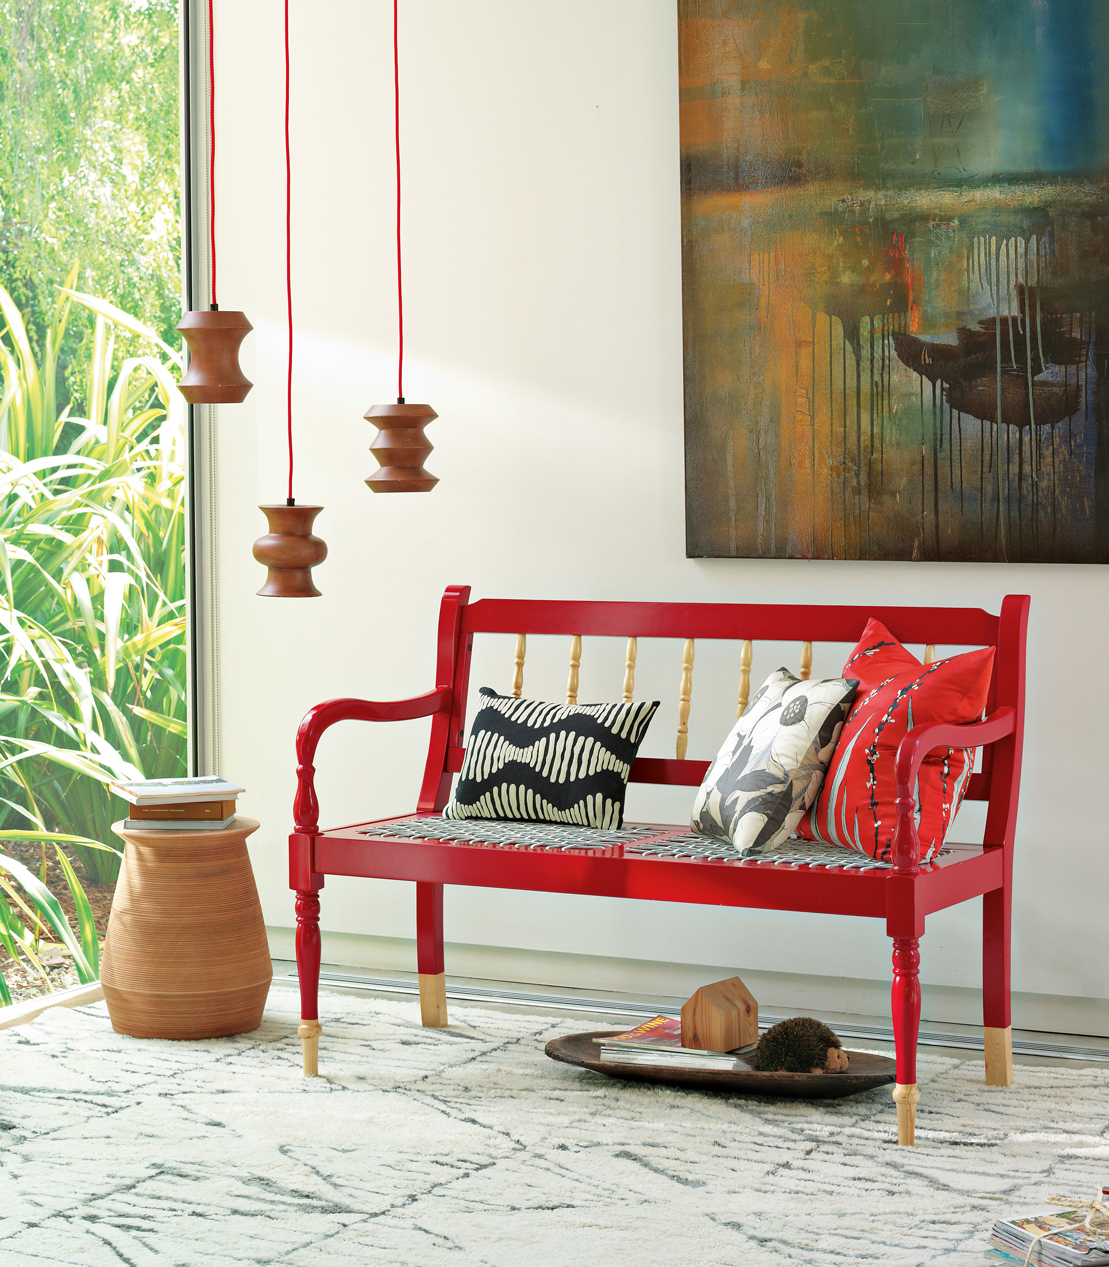 quero um banco de jardim : quero um banco de jardim:West Elm South African Collection